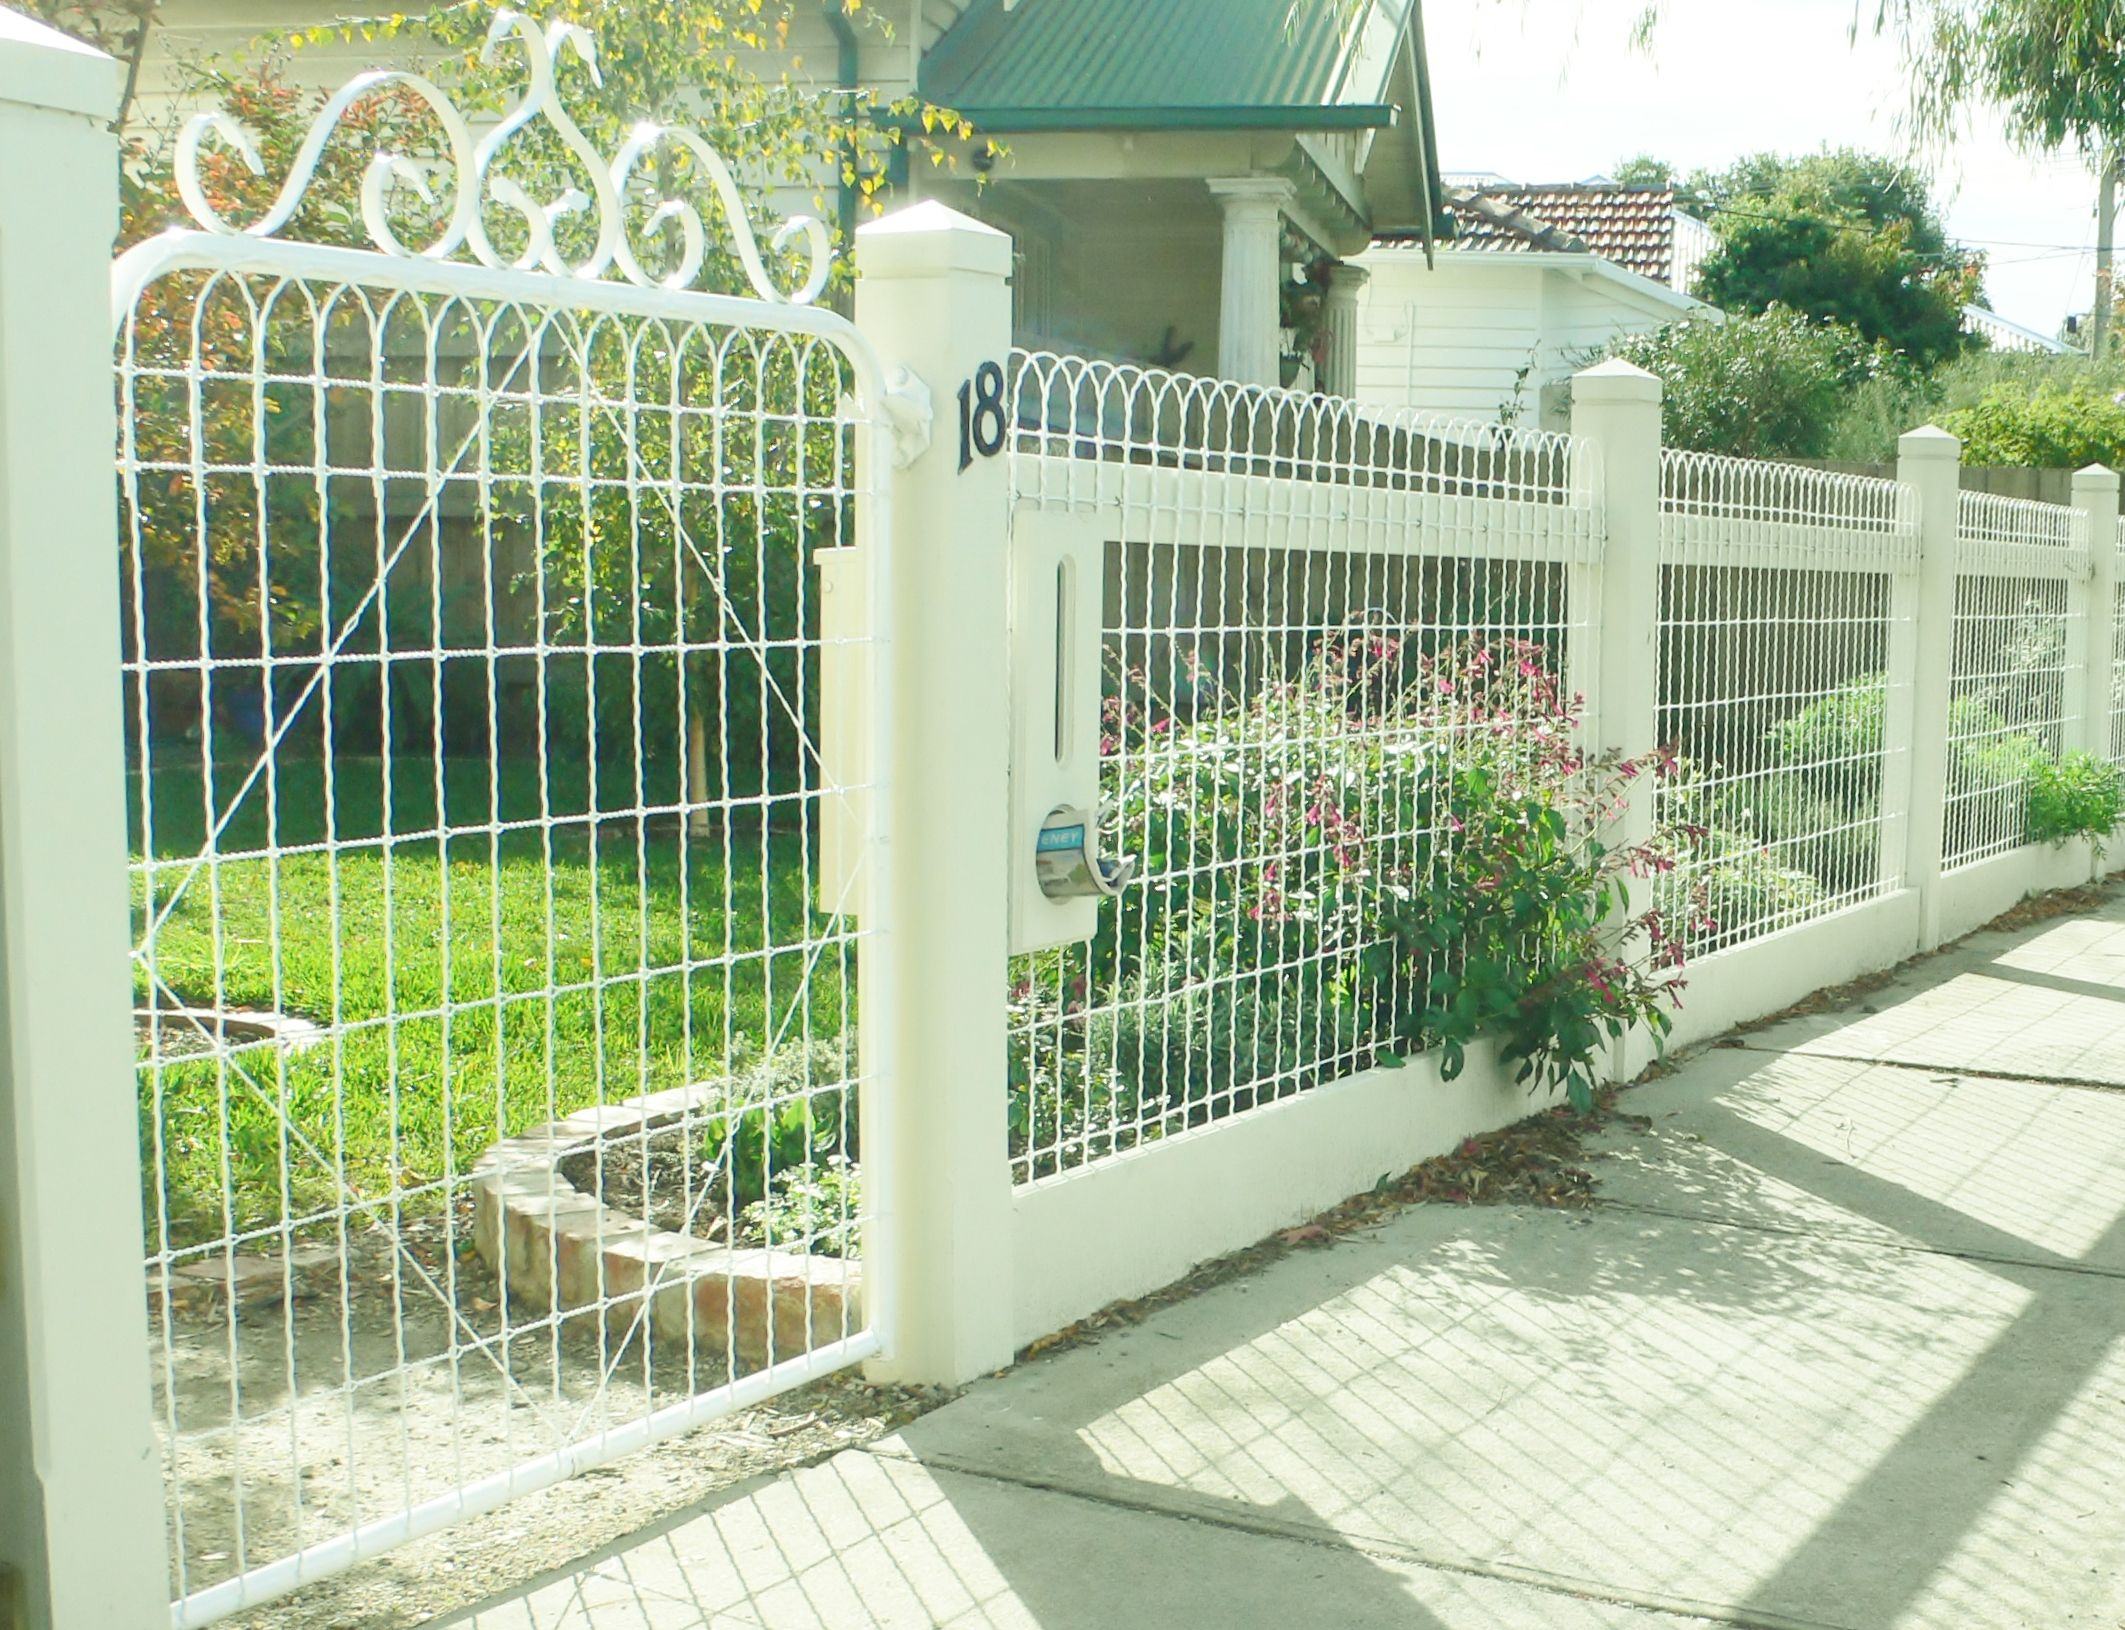 Decorative fence function 92